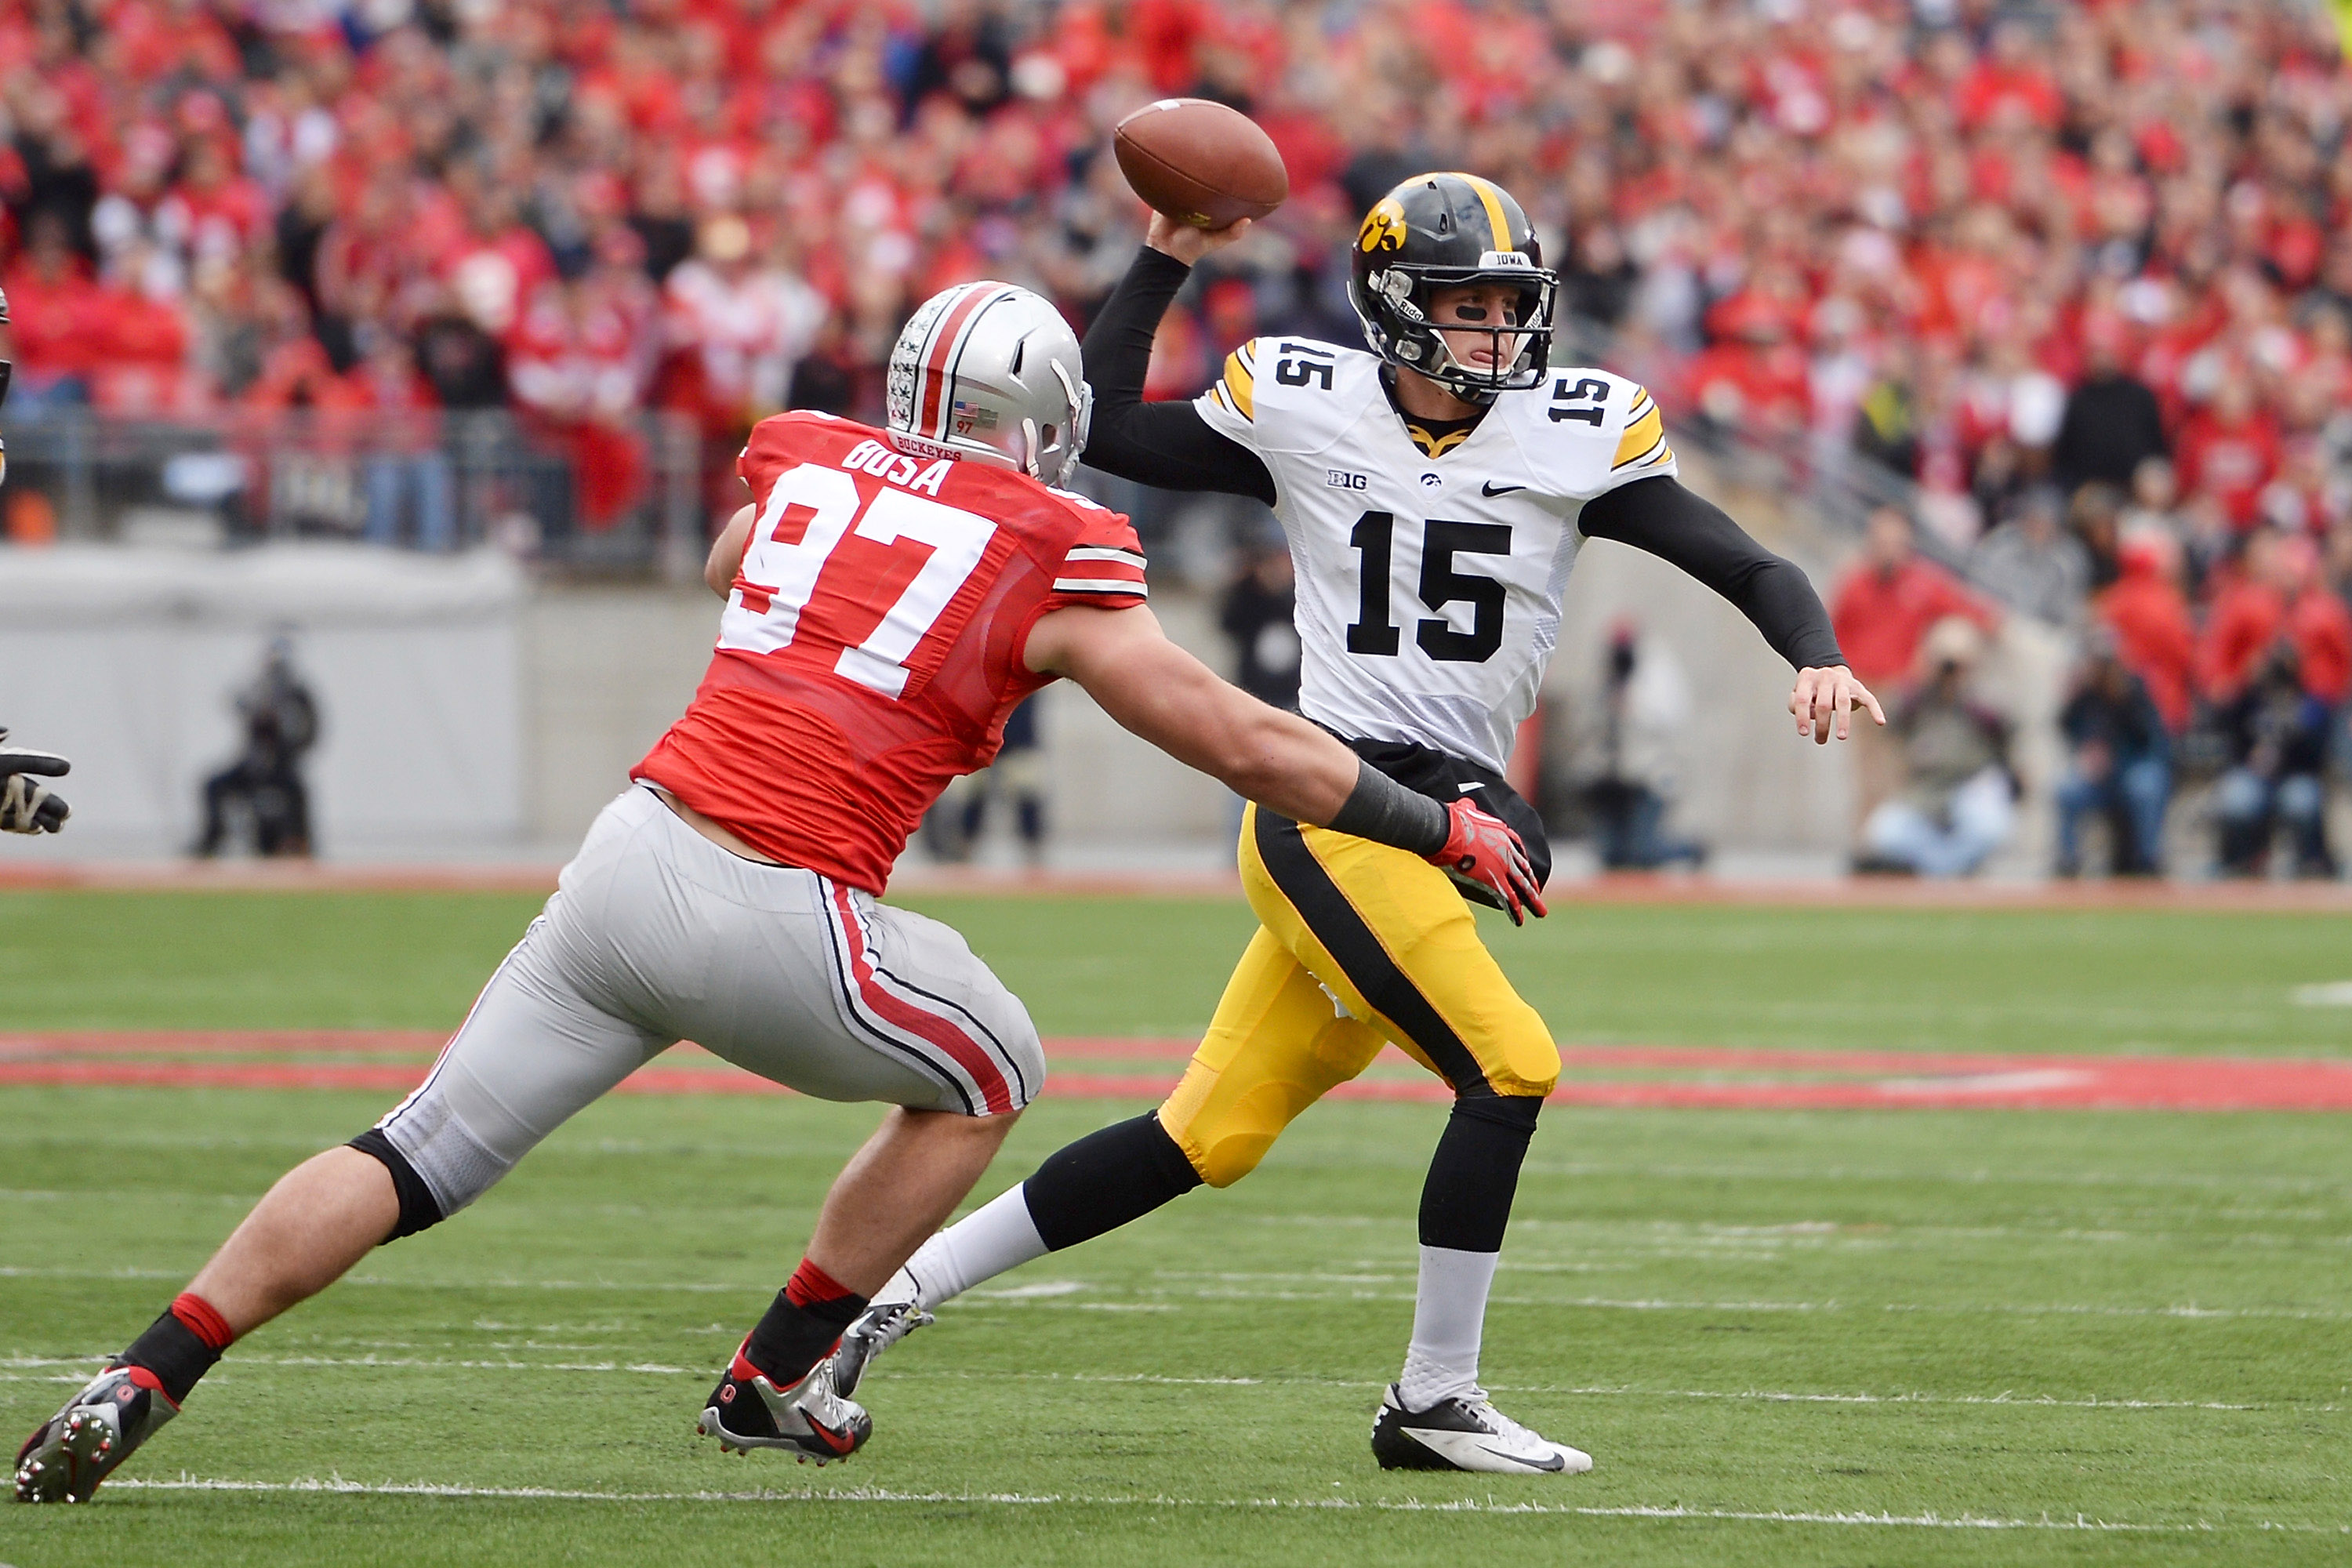 COLUMBUS, OH - OCTOBER 19:  Quarterback Jake Rudock #15 of the Iowa Hawkeyes passes in the second quarter as Joey Bosa #97 of the Ohio State Buckeyes applies pressure at Ohio Stadium on October 19, 2013 in Columbus, Ohio.  Ohio State defeated Iowa 34-24.   (Photo by Jamie Sabau/Getty Images)